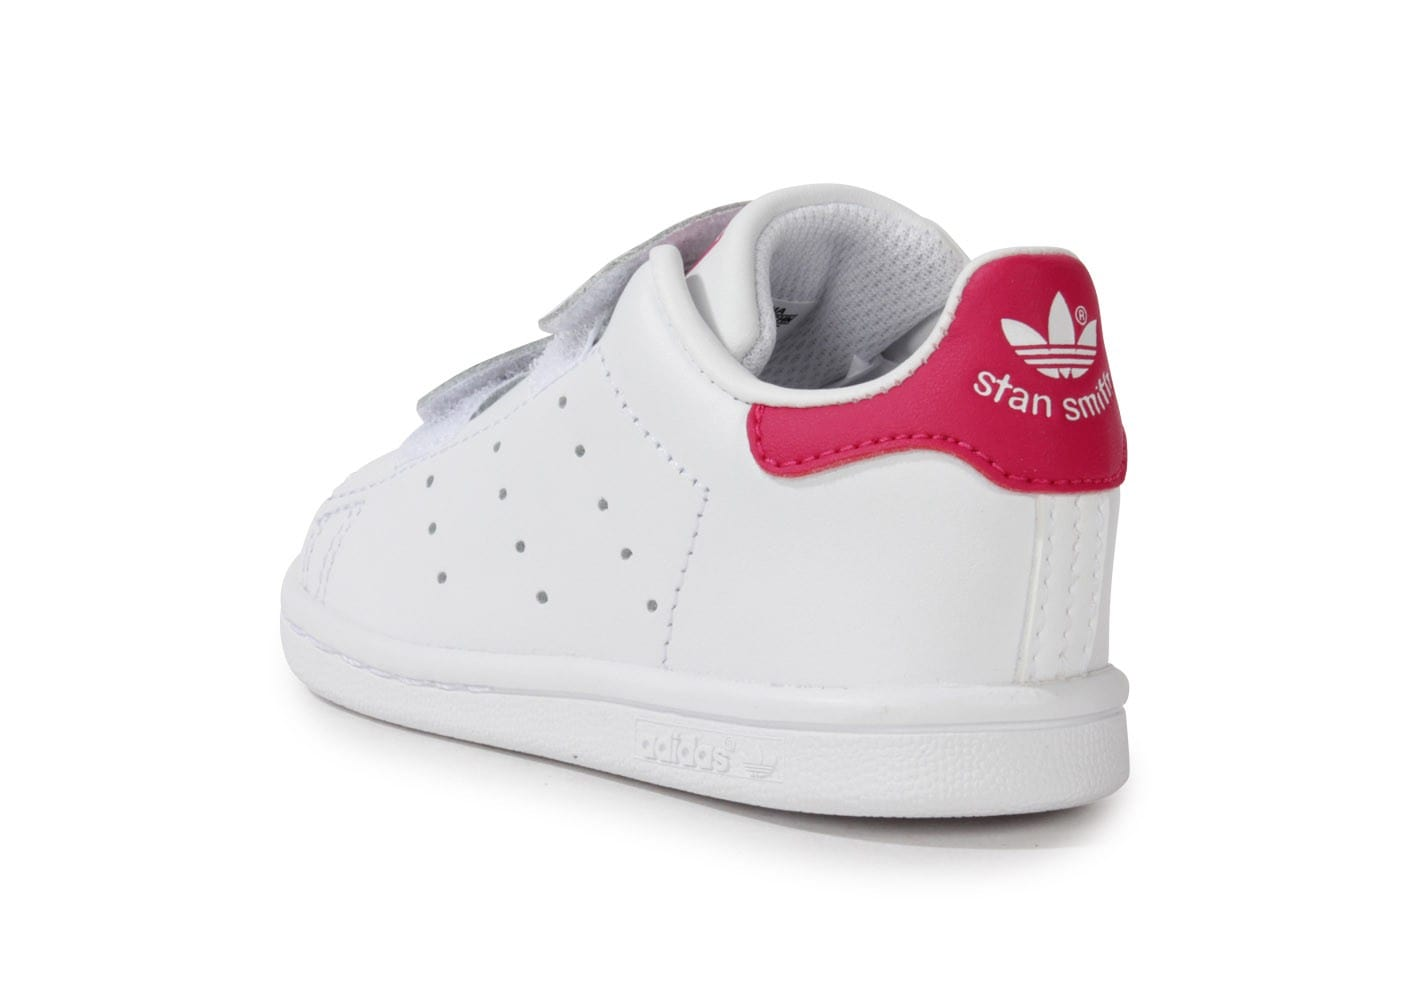 France Pas Cher basket adidas stan smith bebe Vente en ligne